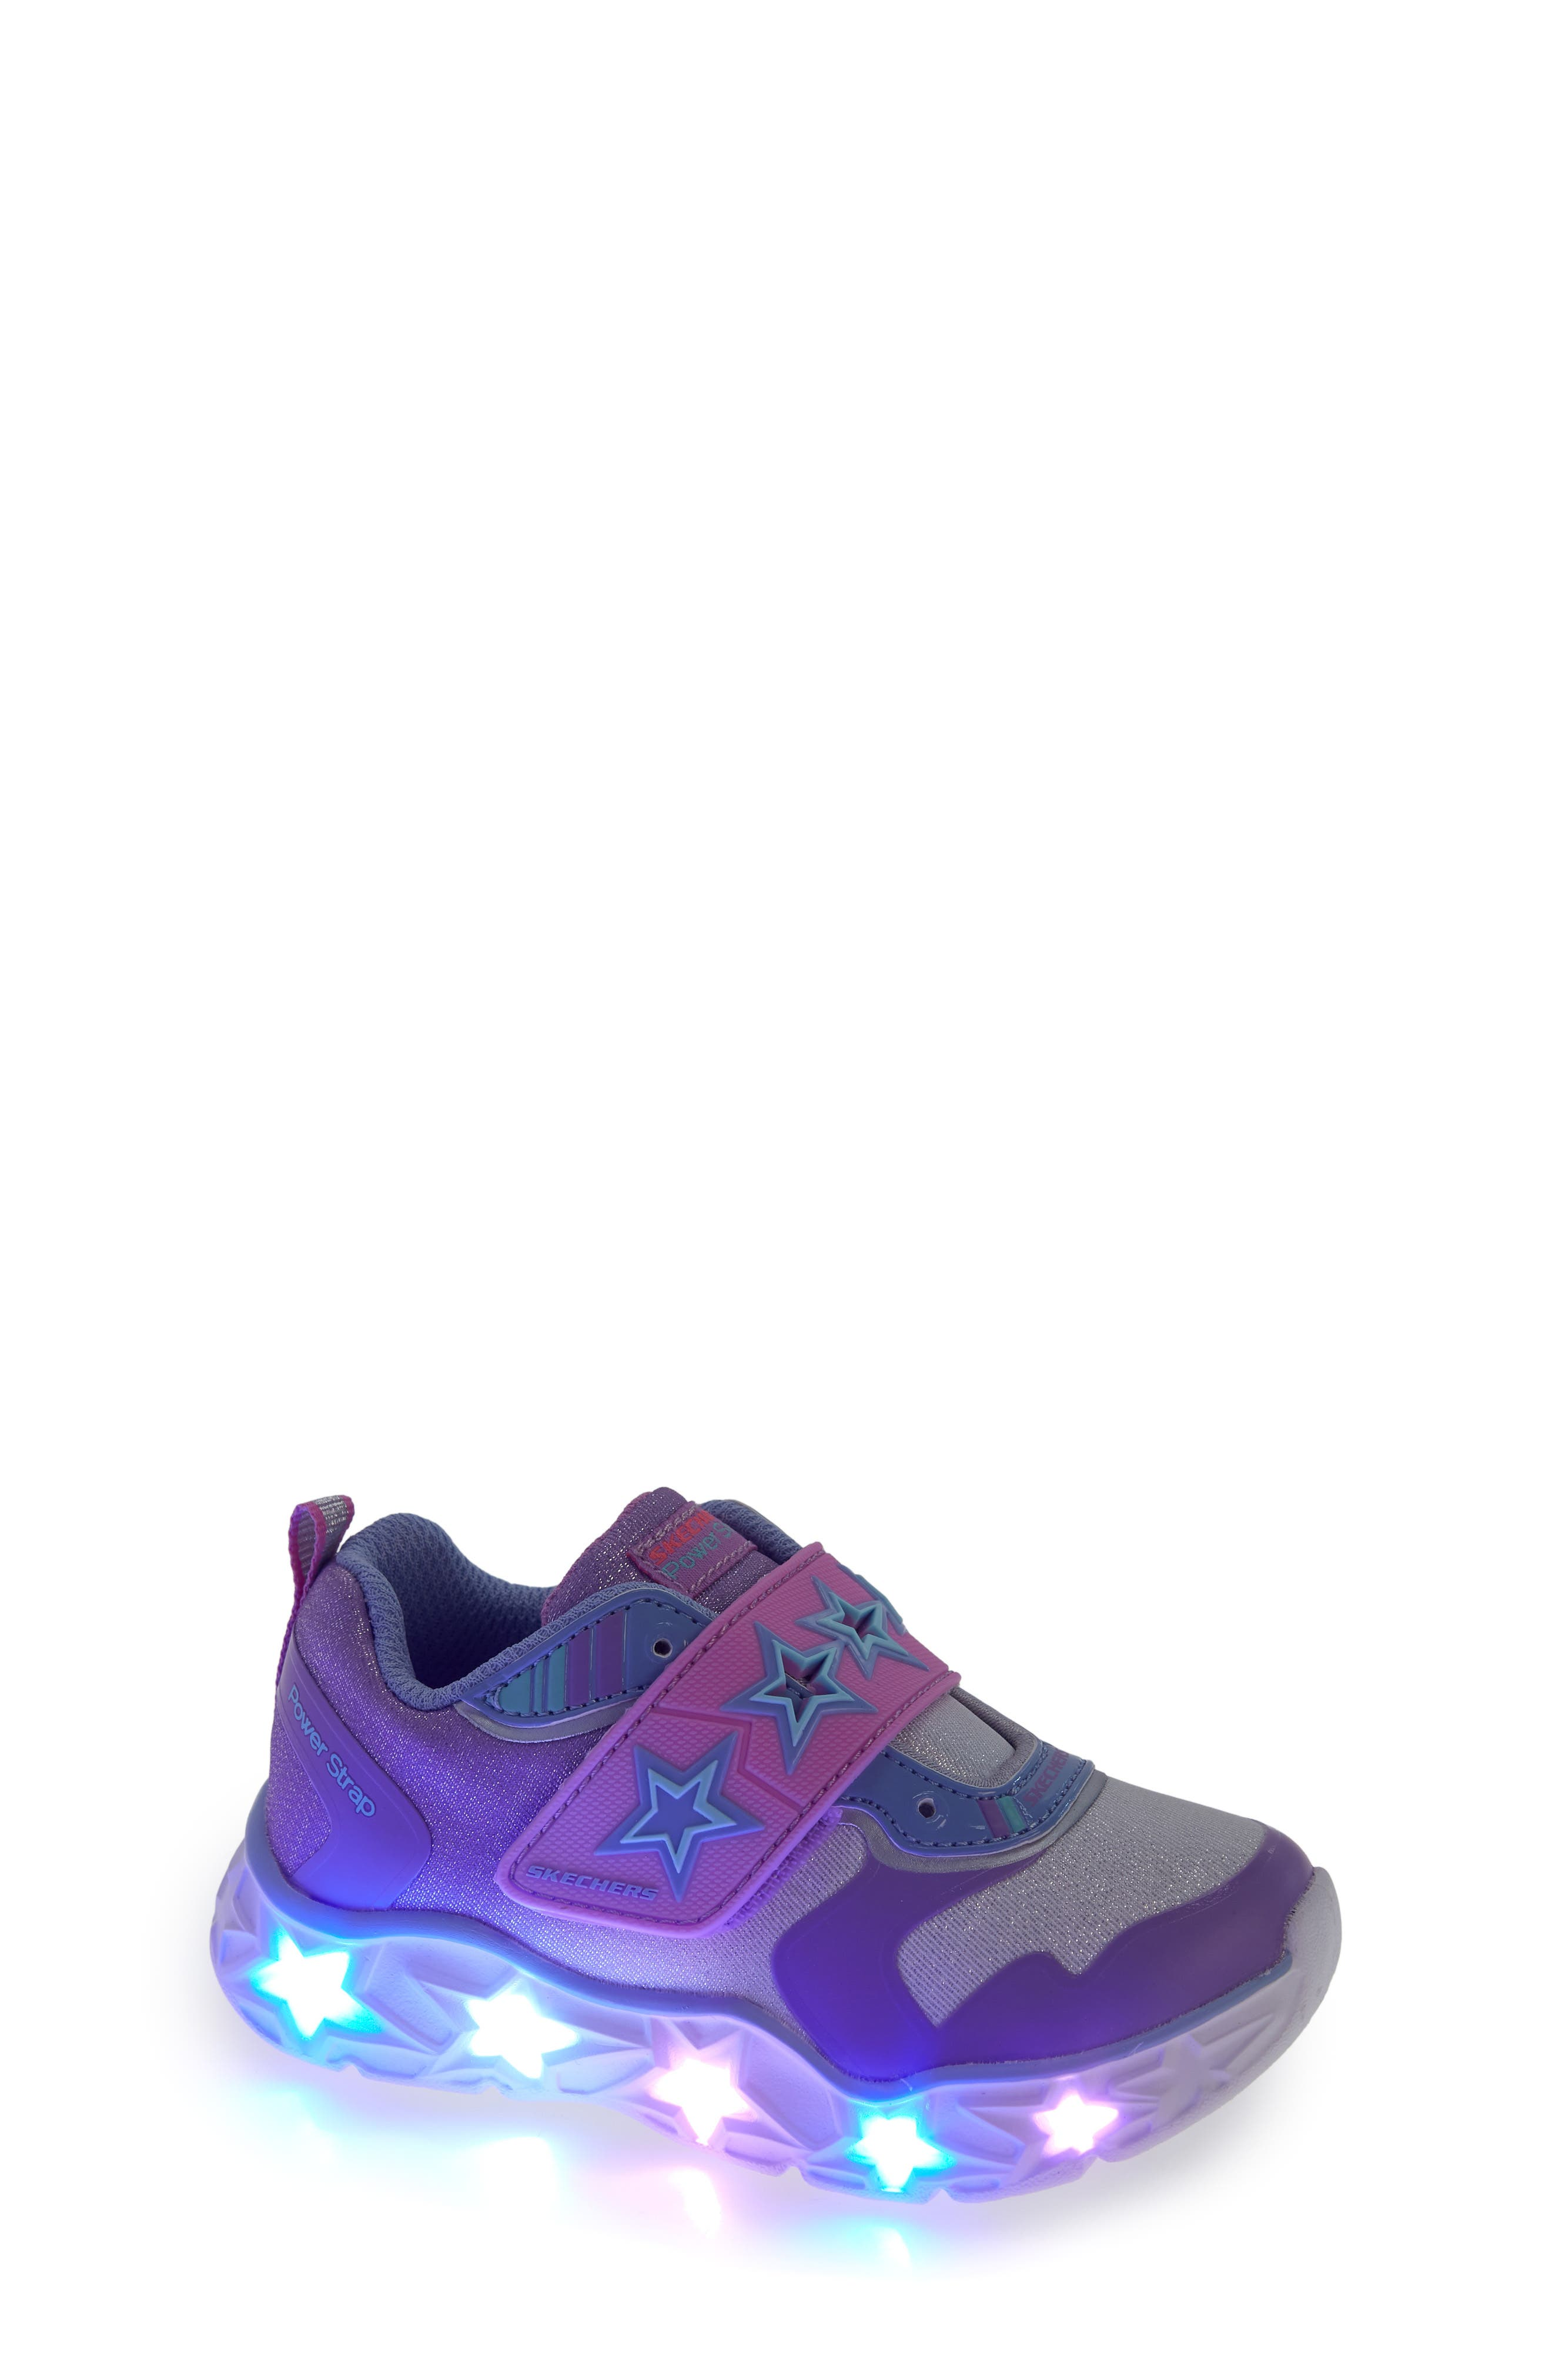 Galaxy Lights Sneakers,                             Alternate thumbnail 7, color,                             500